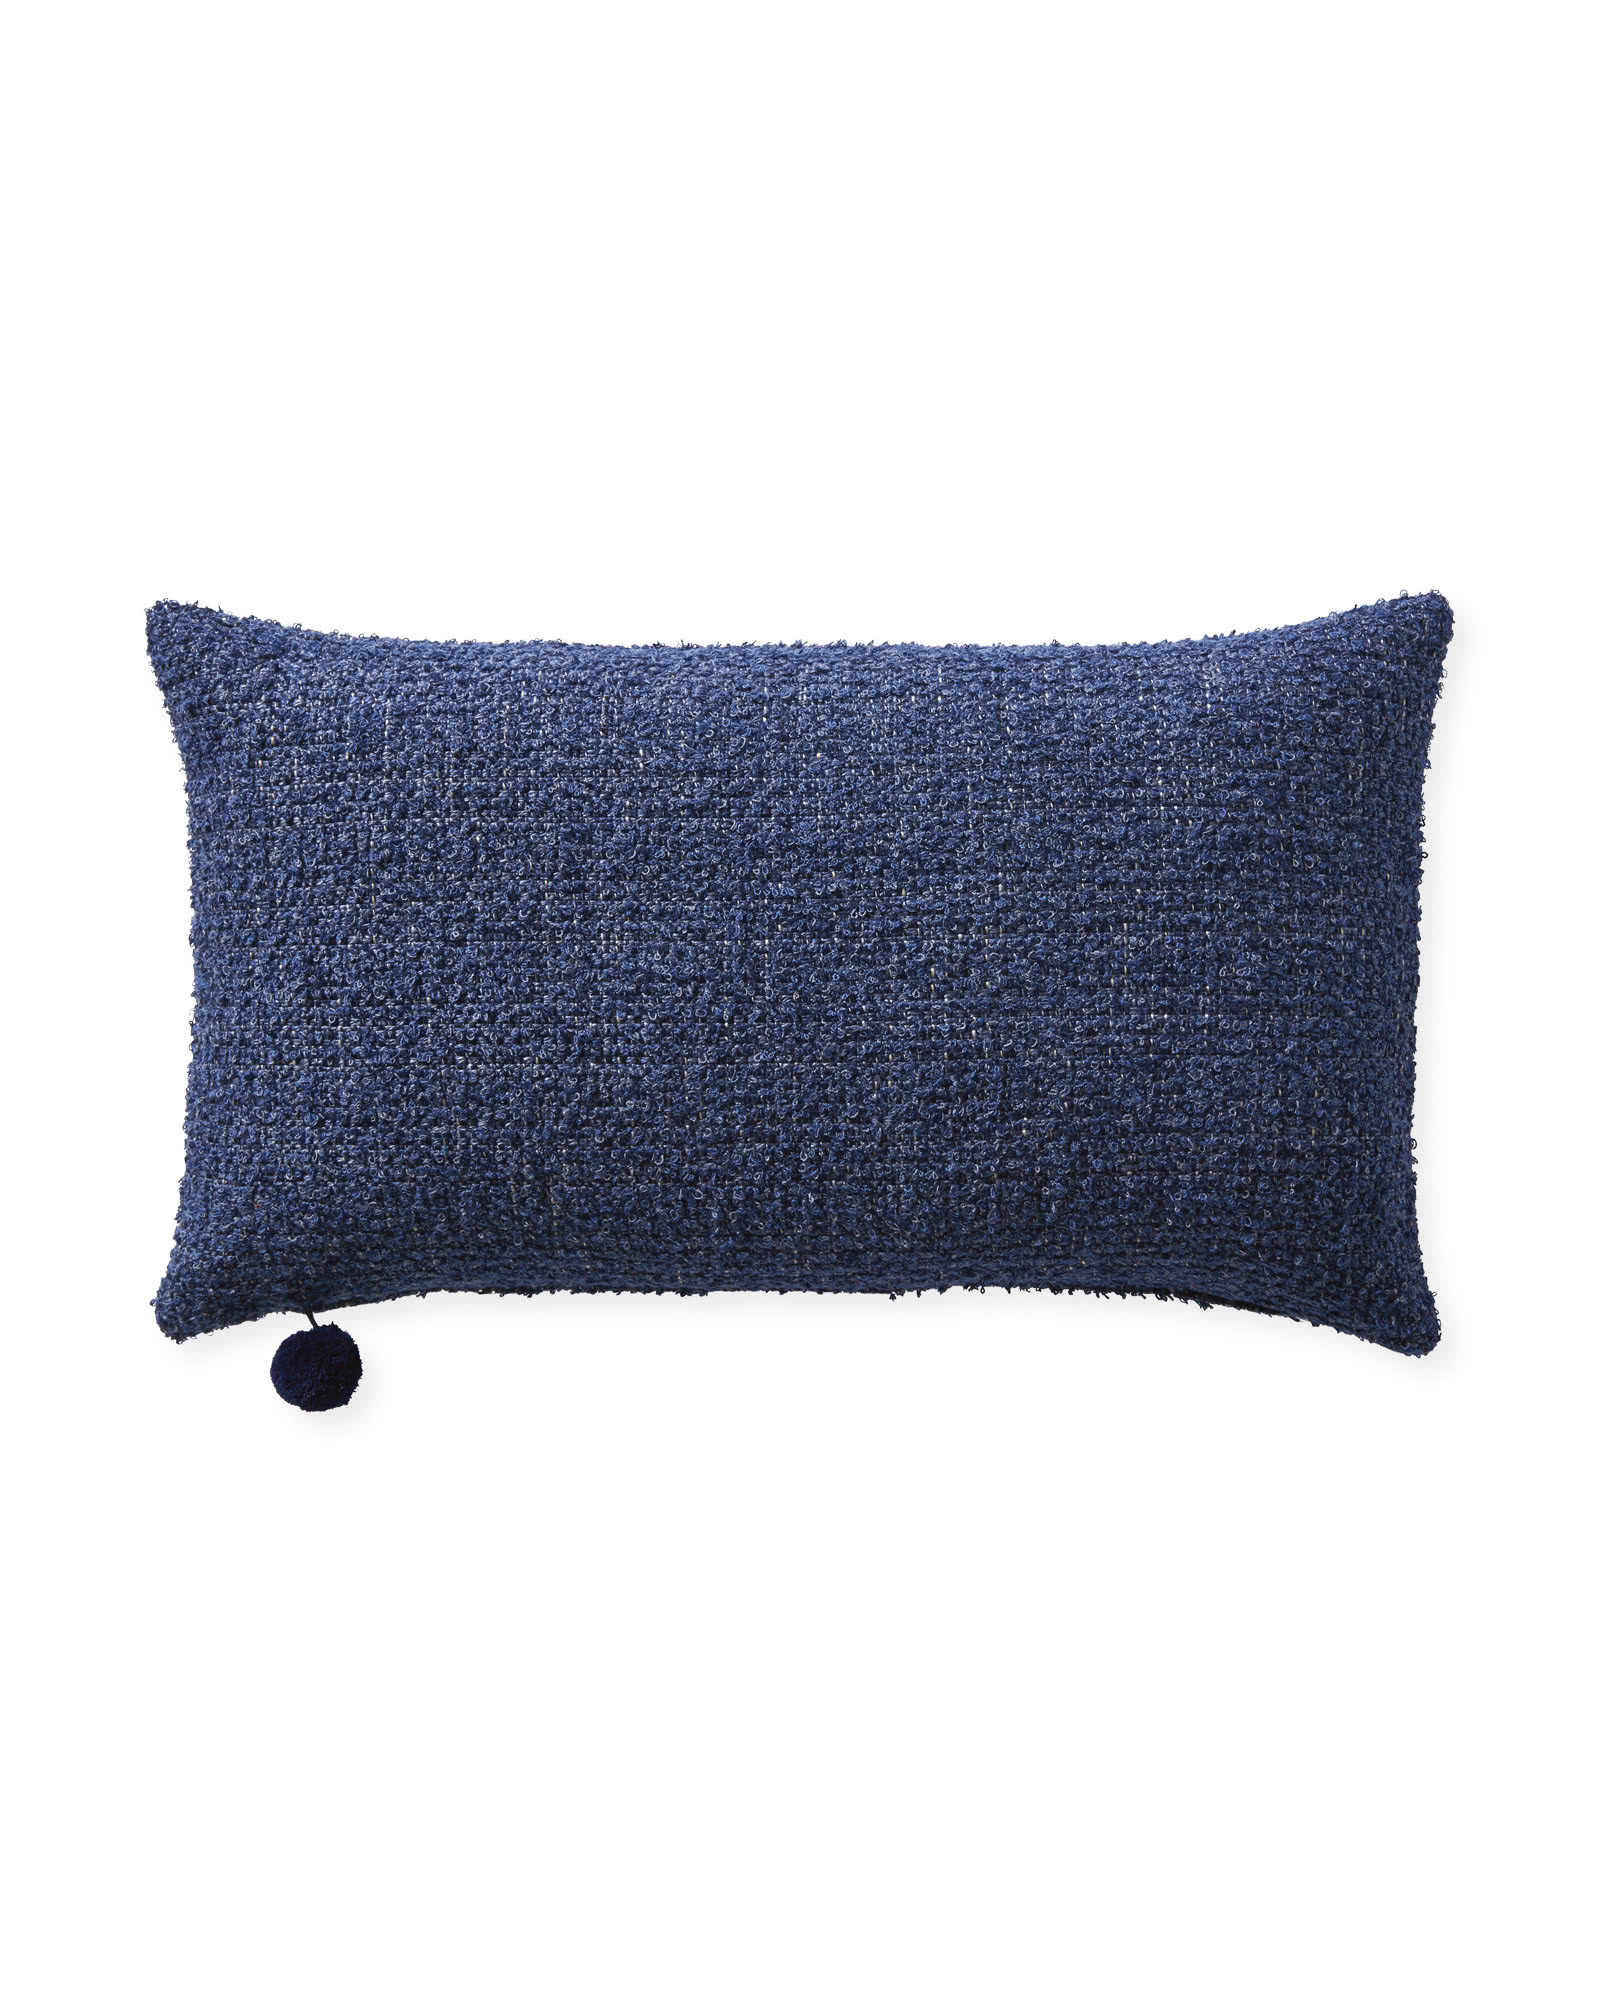 Perennials Performance Textured Loop Pillow Cover, Navy